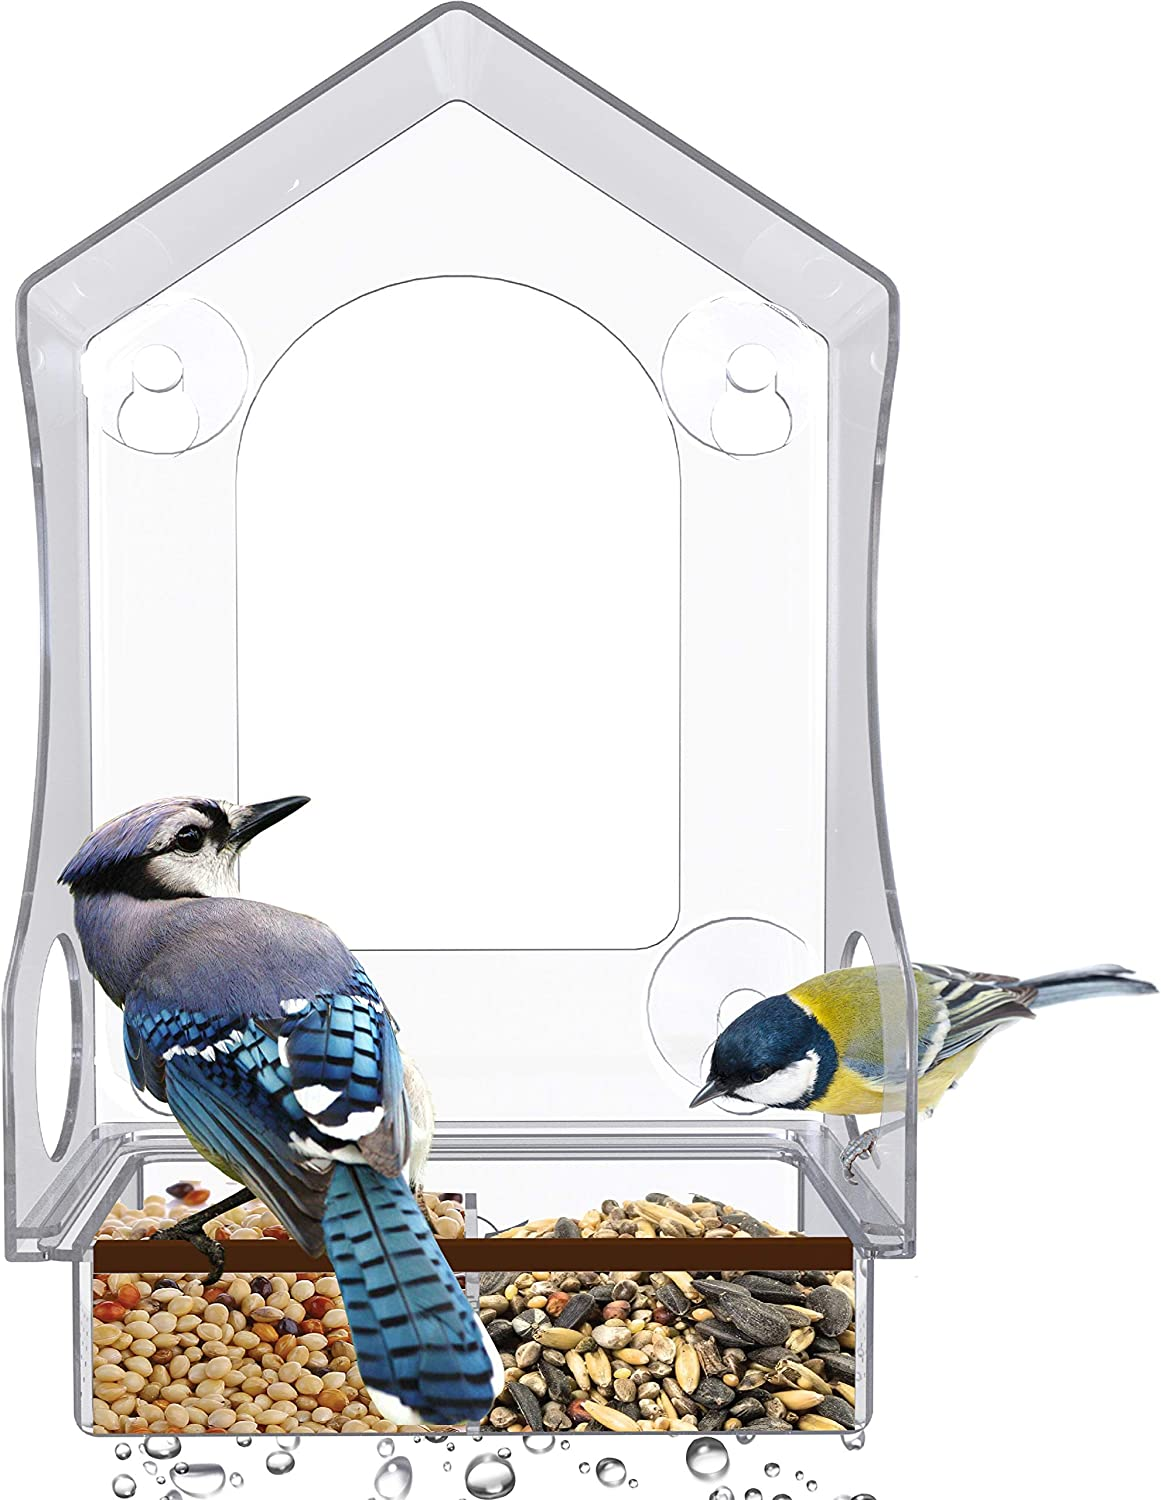 Birdious Villa Window Bird Feeder – Tall Suction Cup Bird Feeder with Sliding Tray, 2 Bird Seed Holders with Drainage, Wide Viewing Hole + 2 Side Holes - Clear Acrylic Bird Feeder, Bird Watcher Gifts